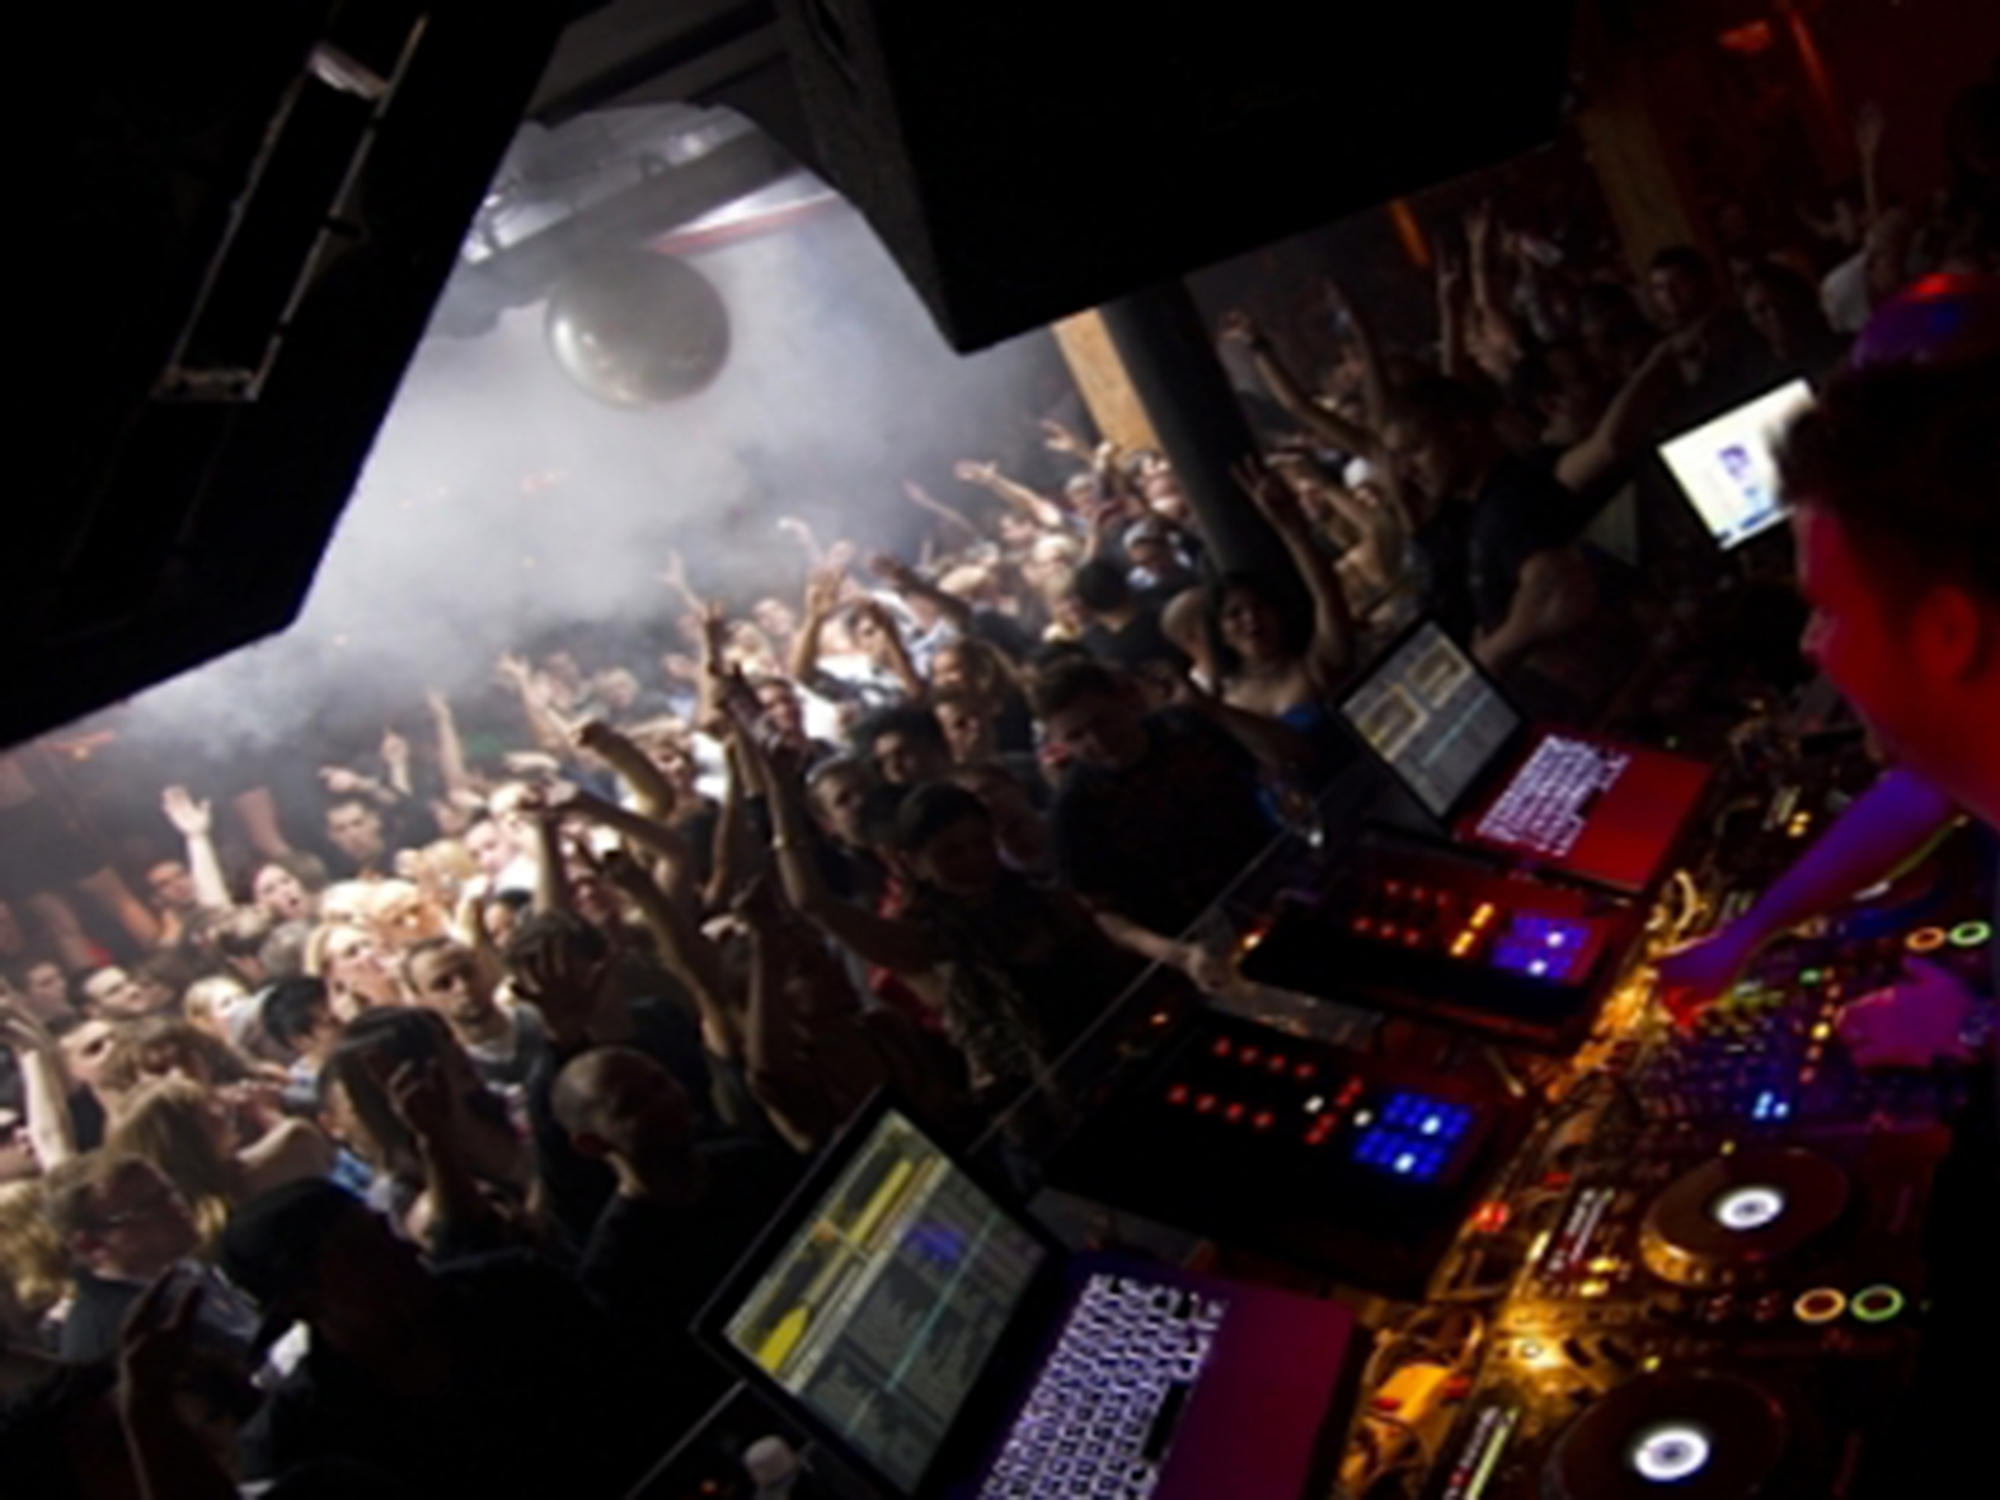 Dj Alfre Toronto Canada Club This Is London (April 14-2012) (2000X1500)